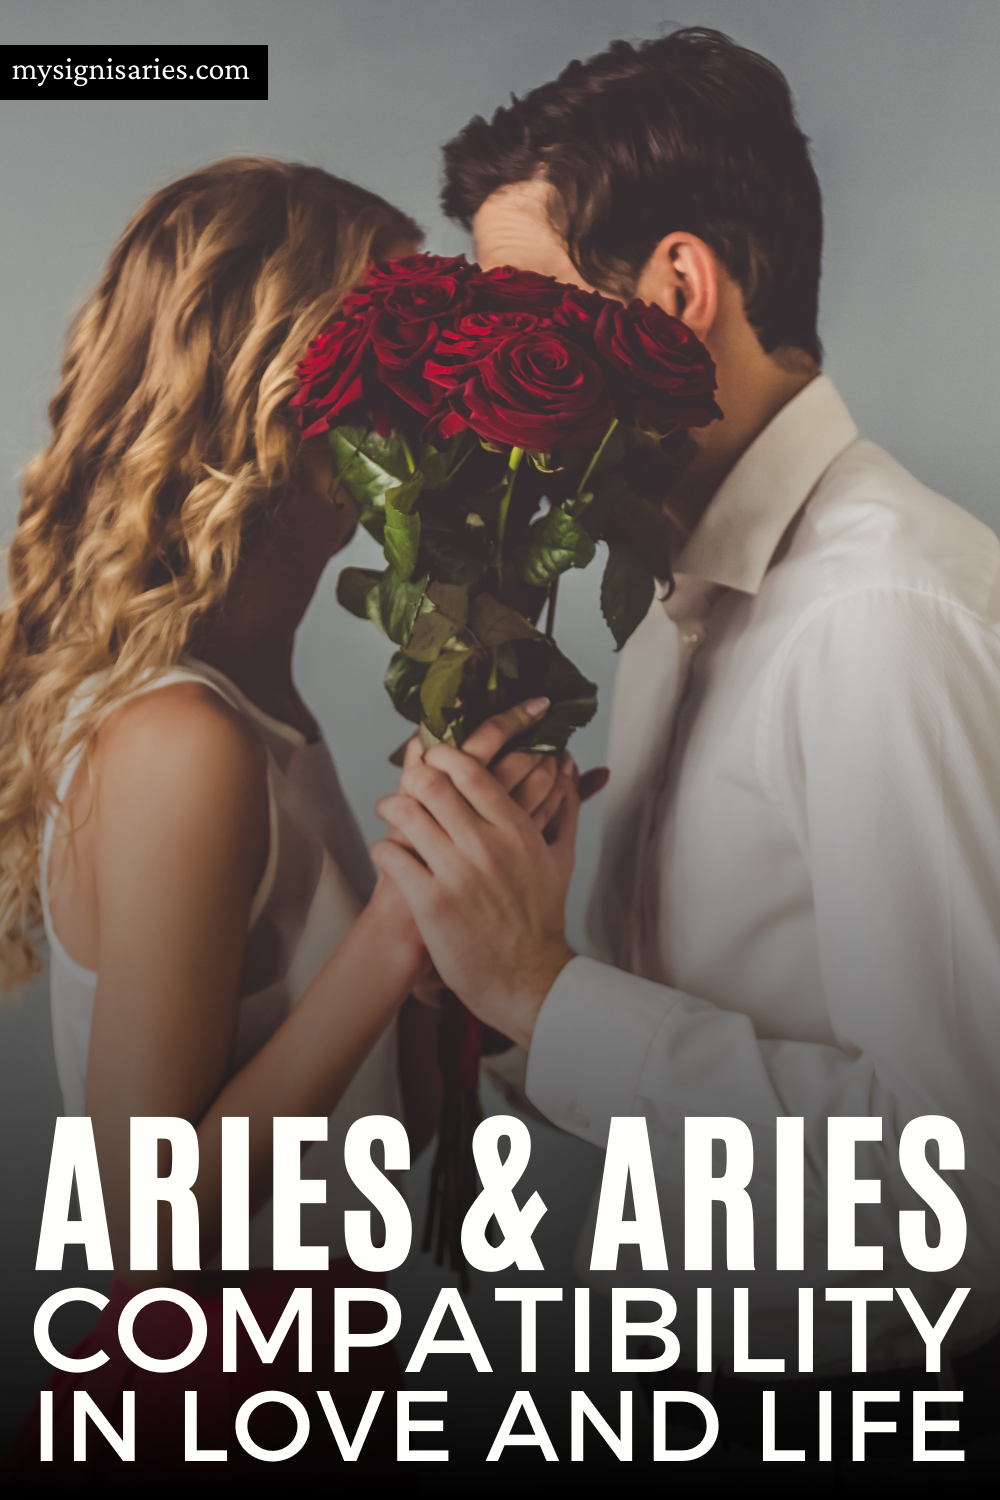 Aries And Aries Compatibility In Love And Life #aries #arieslove #ariescompatibility #zodiac #astrology